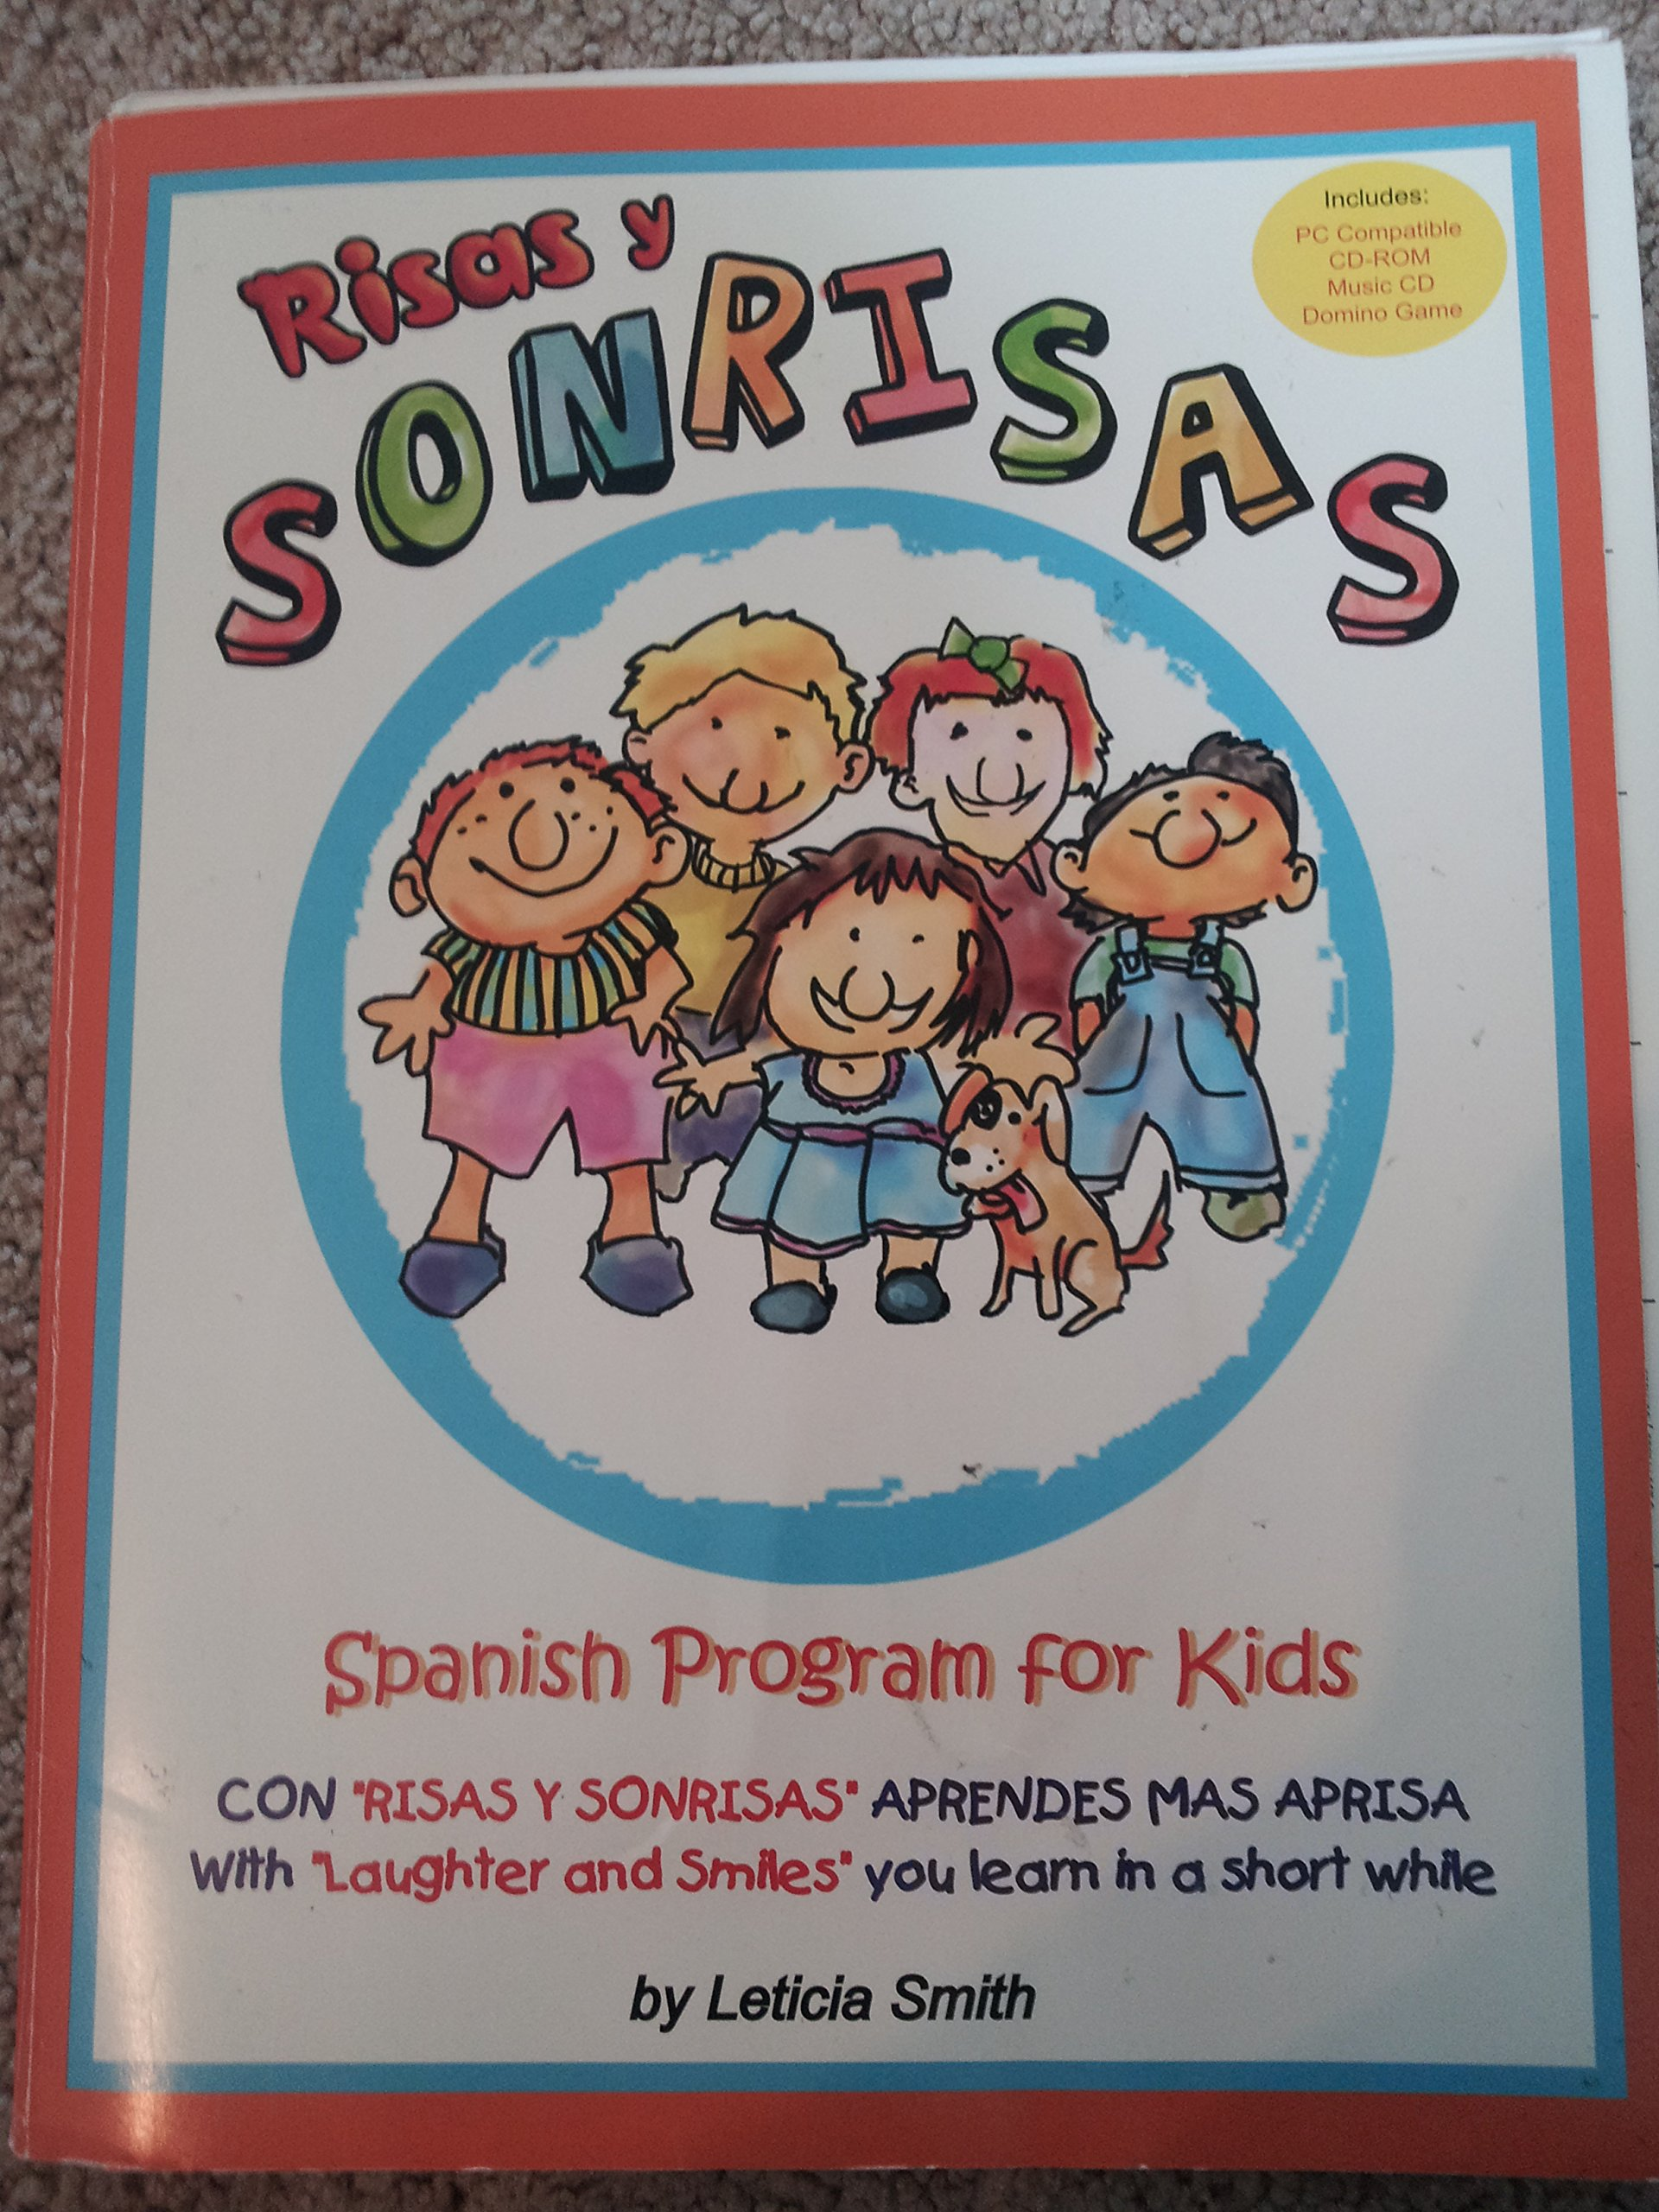 Risas y Sonrisas-Spanish Program for Kids w/cd-rom and Music CD: Leticia Smith: 9780976014713: Amazon.com: Books